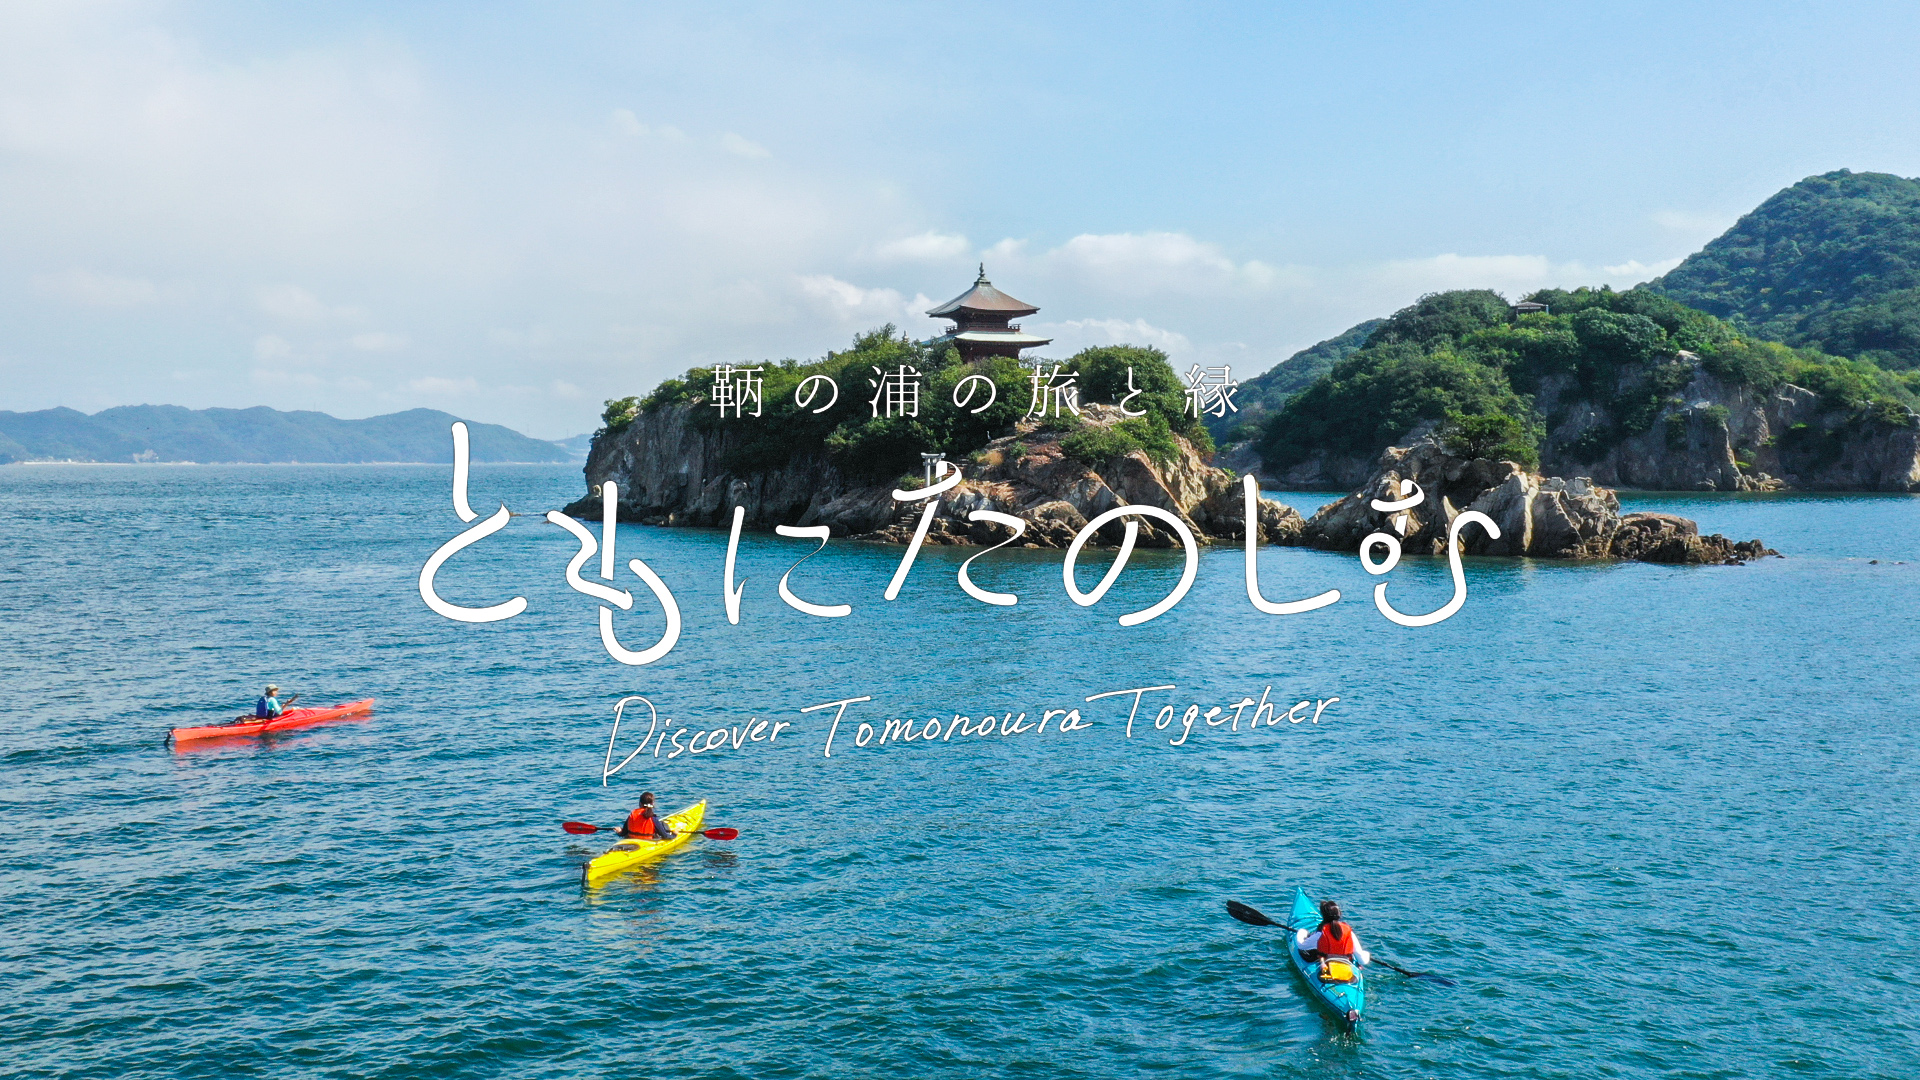 ともにたのしむ Discover Tomonoura Together  -English-